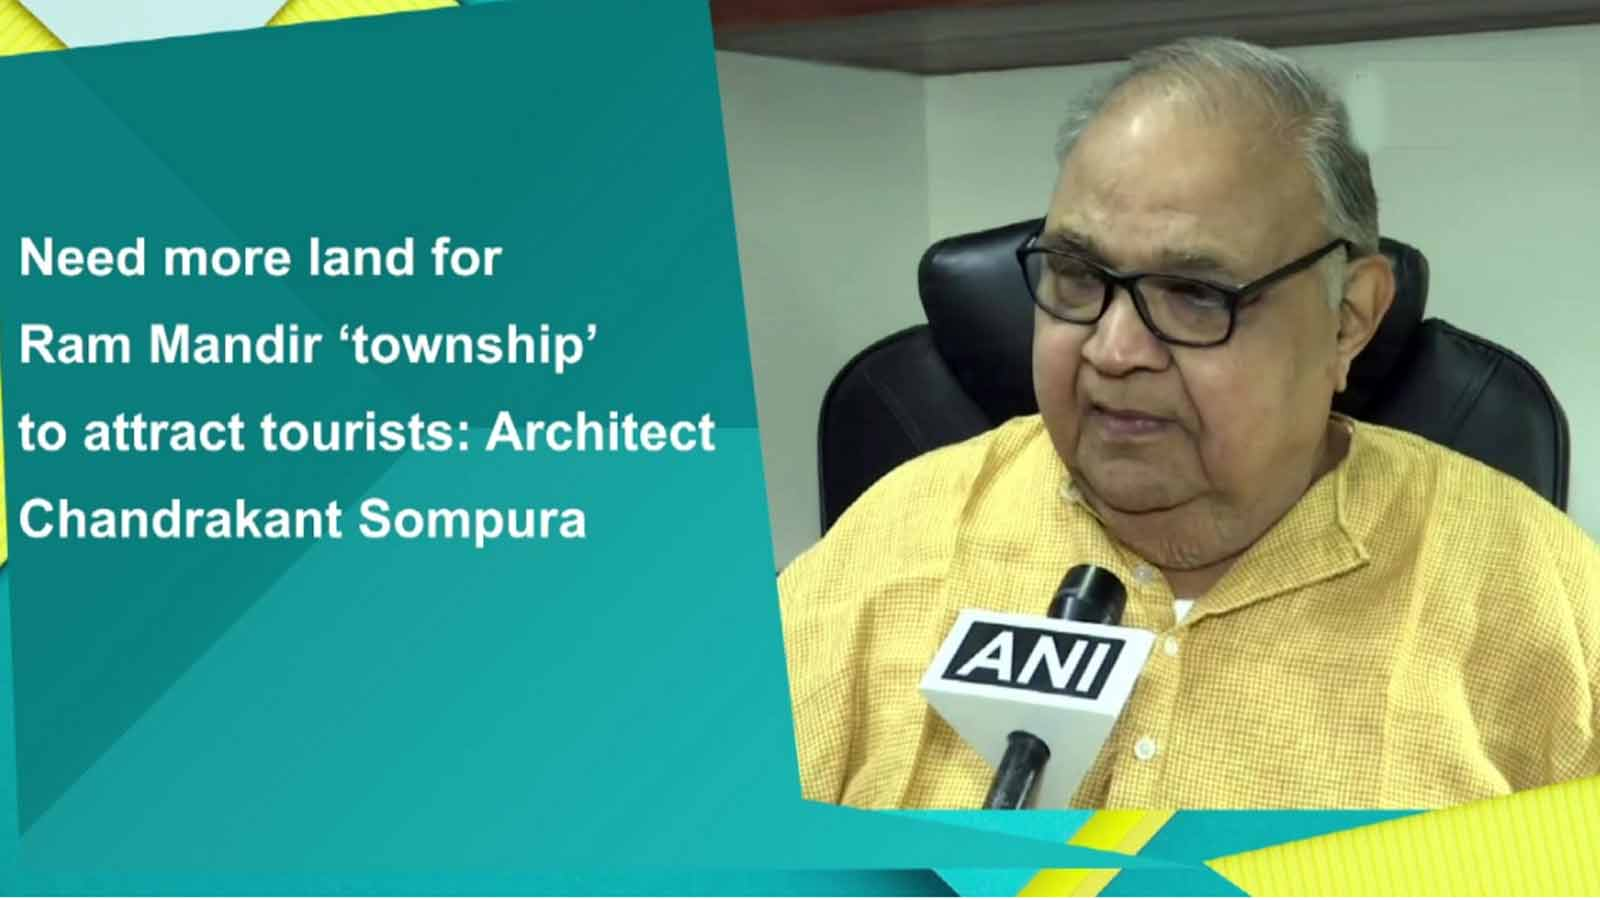 need-more-land-for-ram-mandir-township-to-attract-tourists-architect-chandrakant-sompura